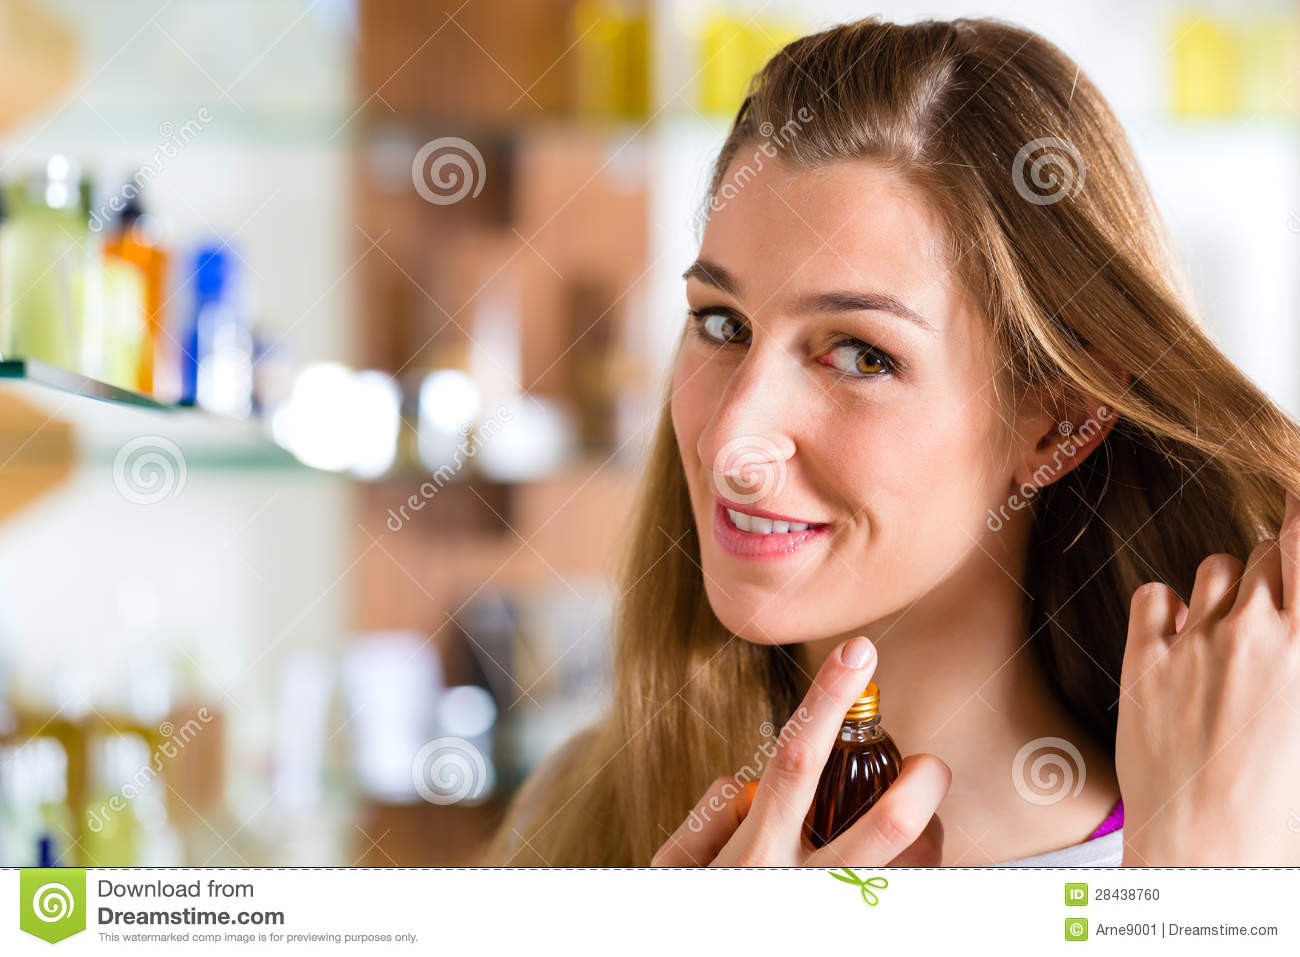 Woman Buying Perfume In Shop Or Store Stock Photo Image